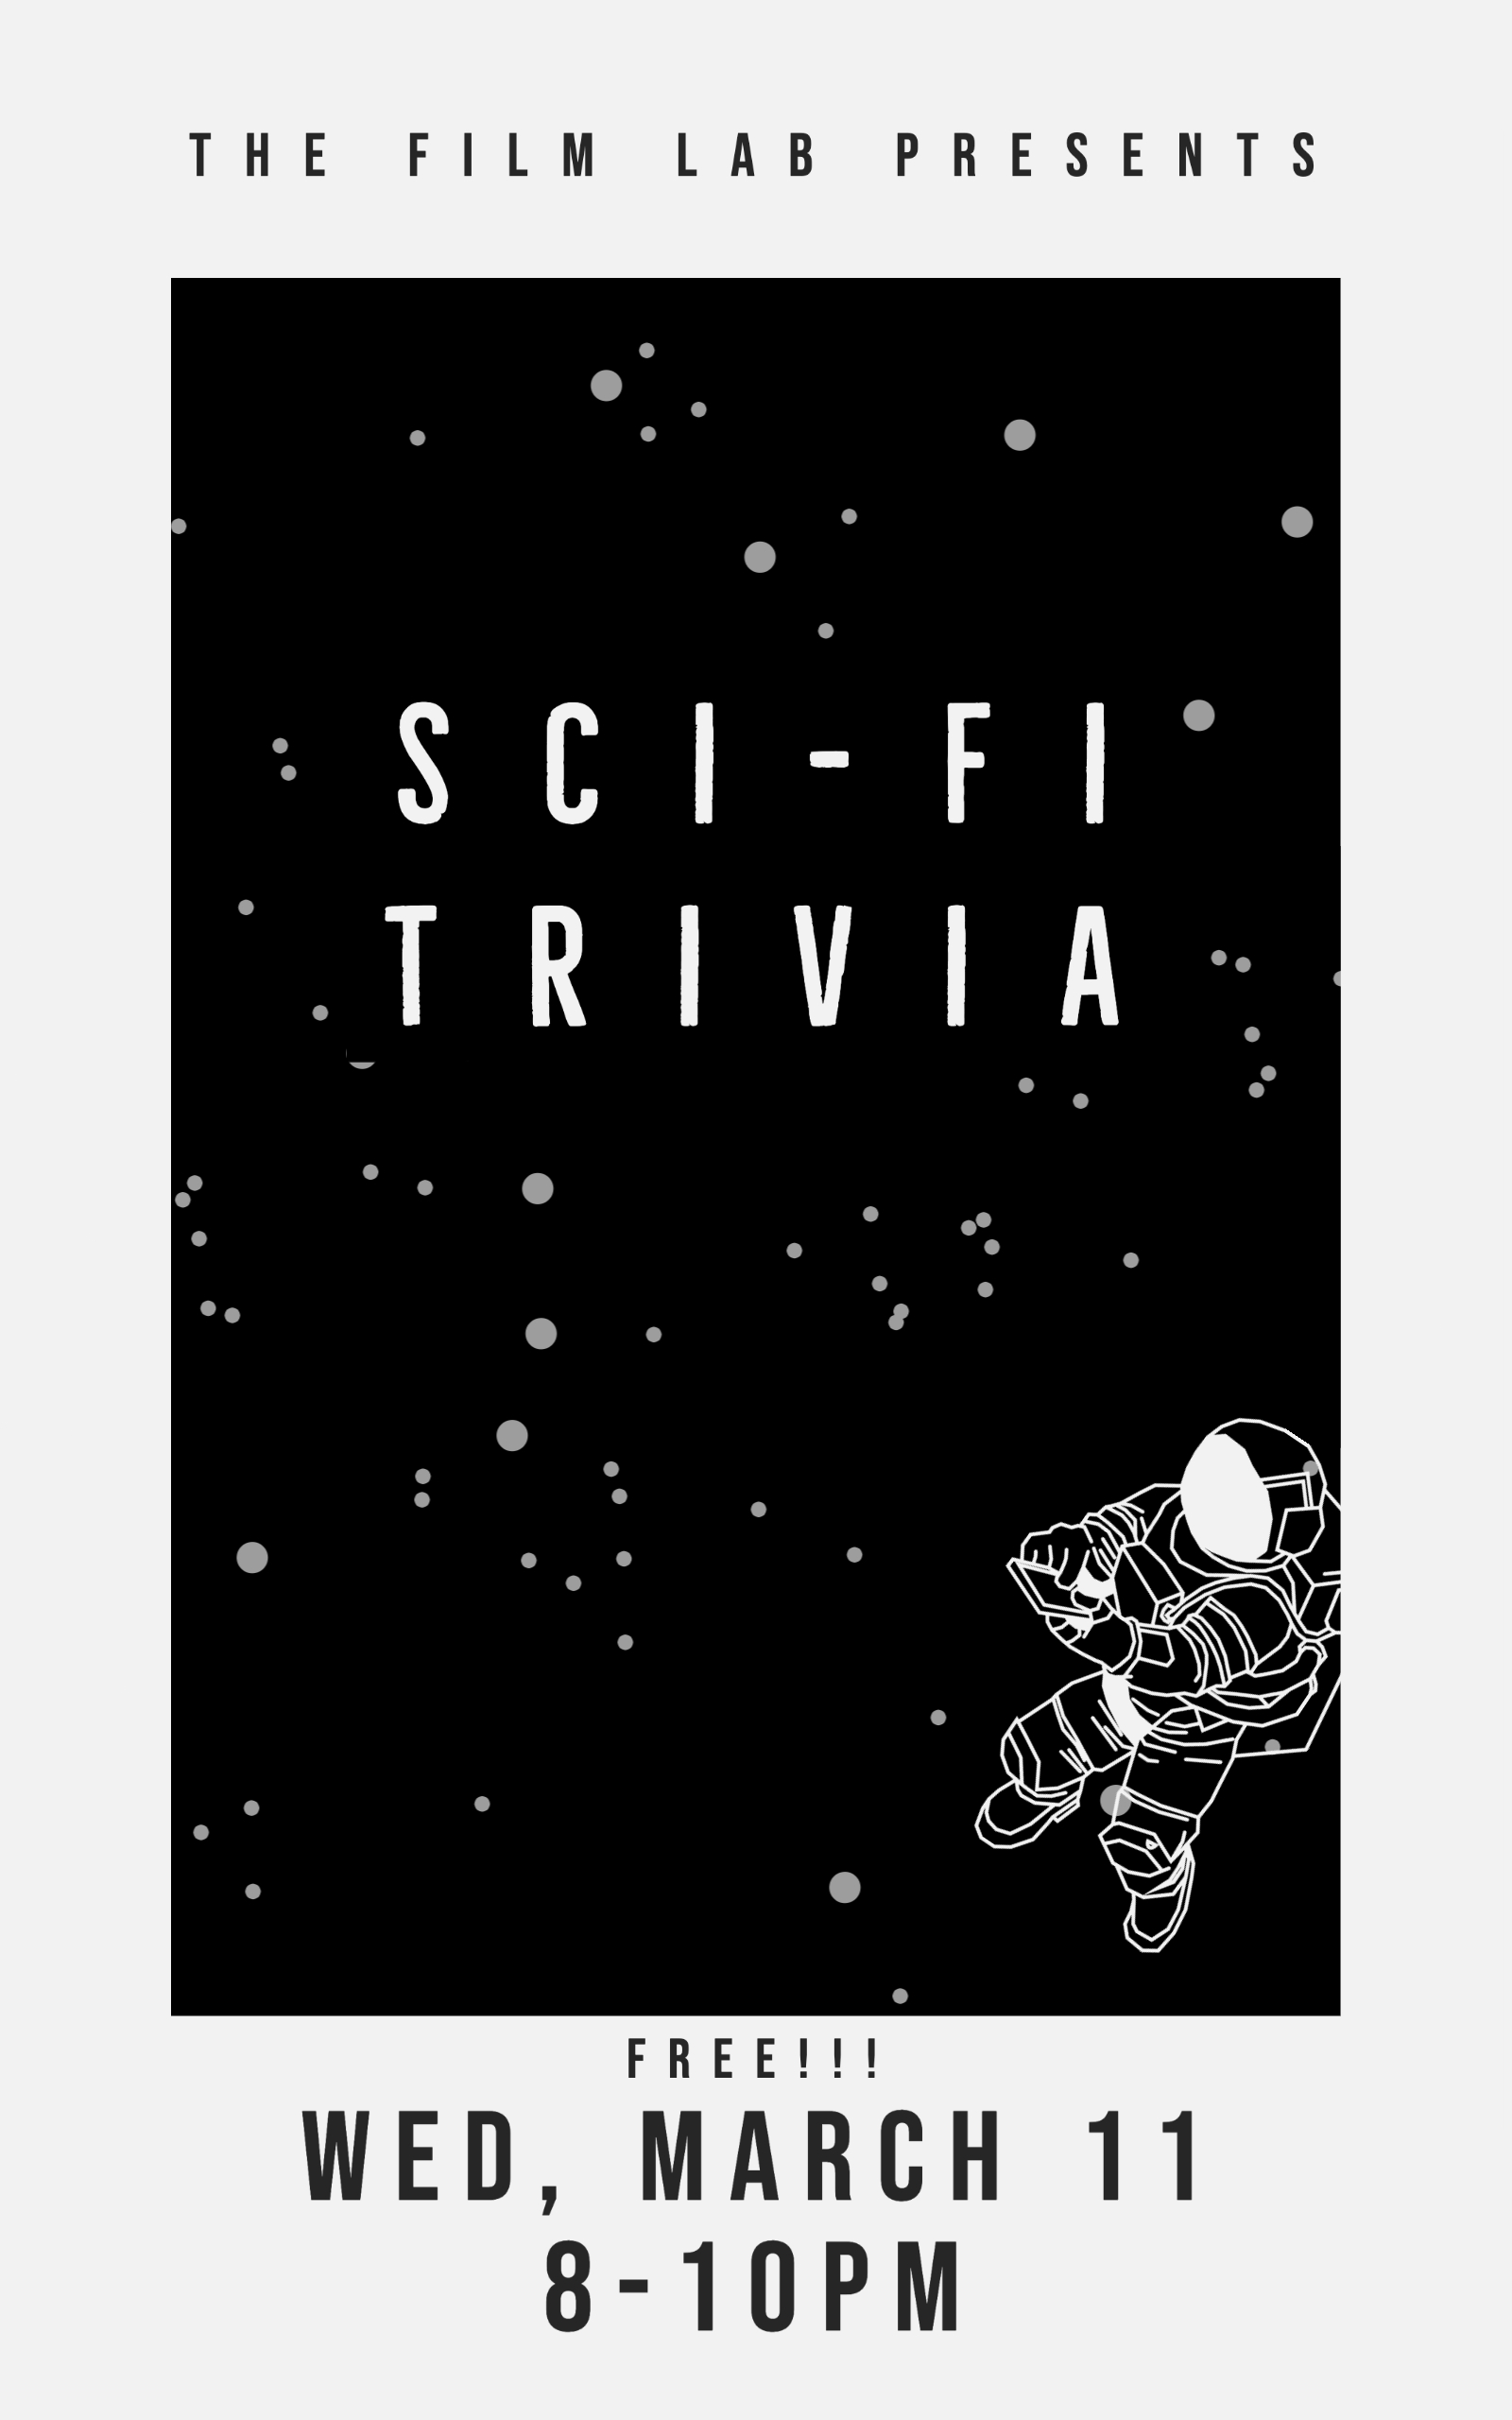 Poster for Science Fiction Trivia